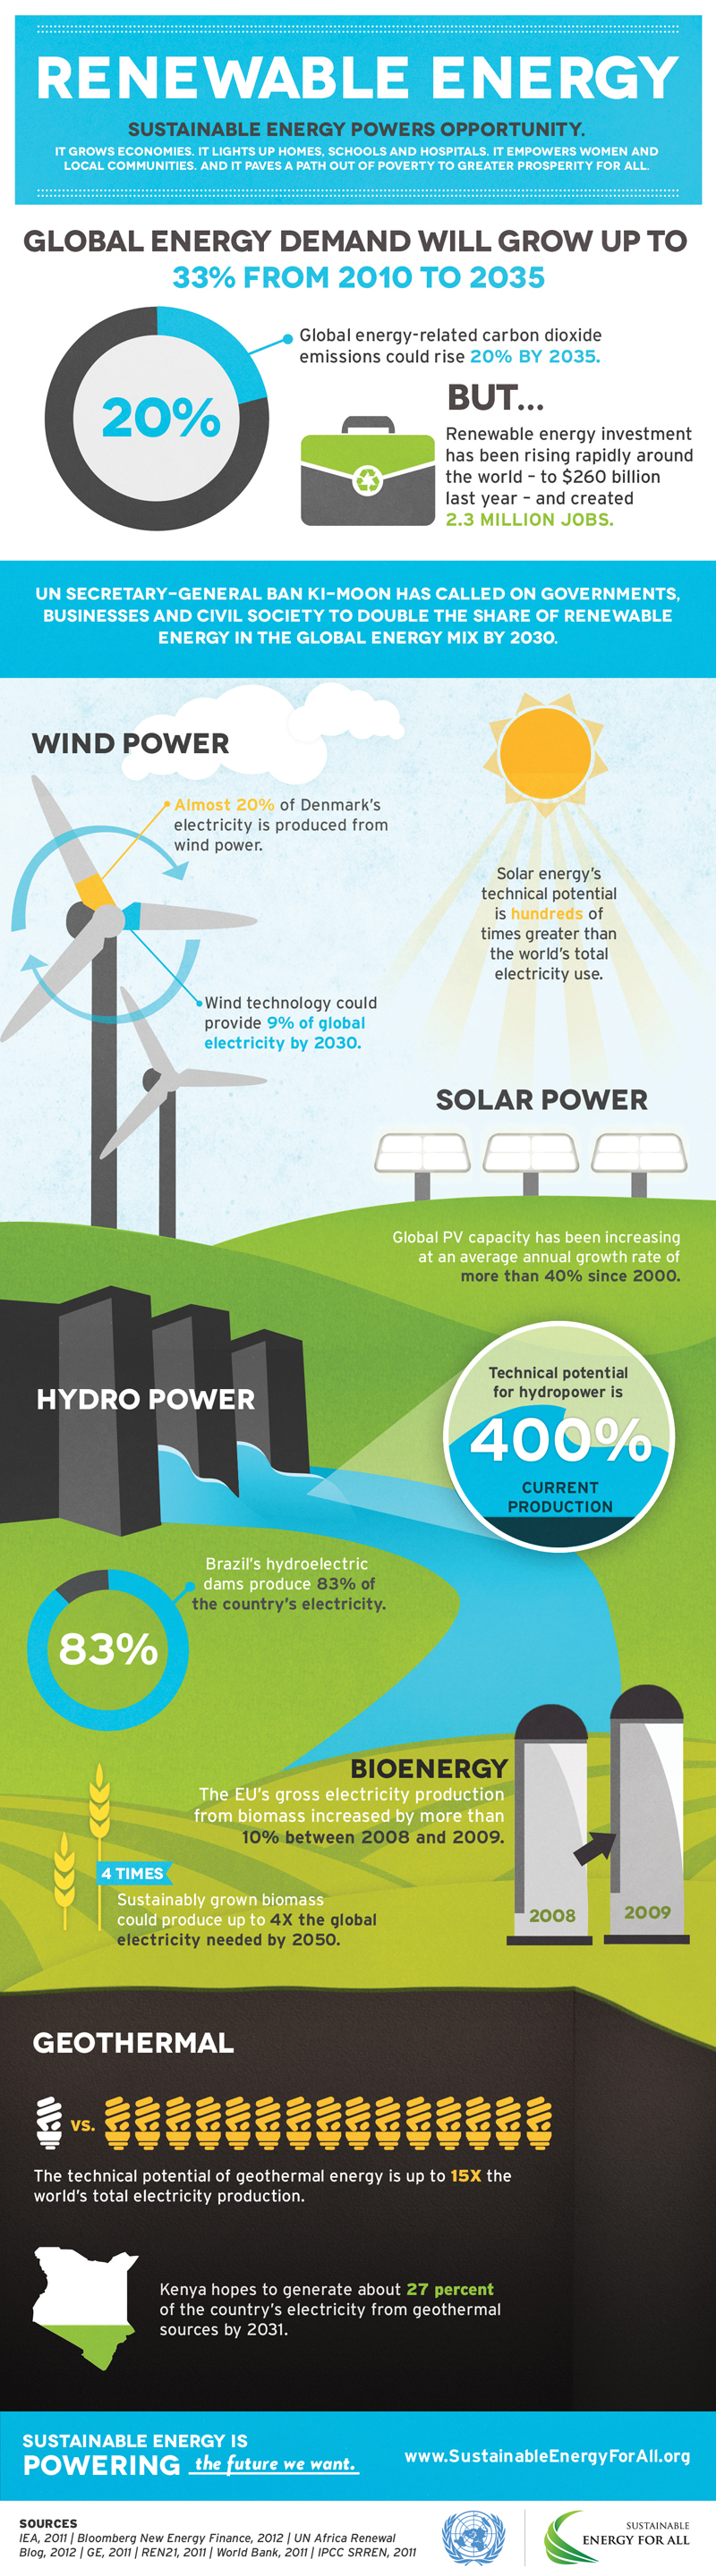 sustainable-energy-for-all-renewable-energy.jpg